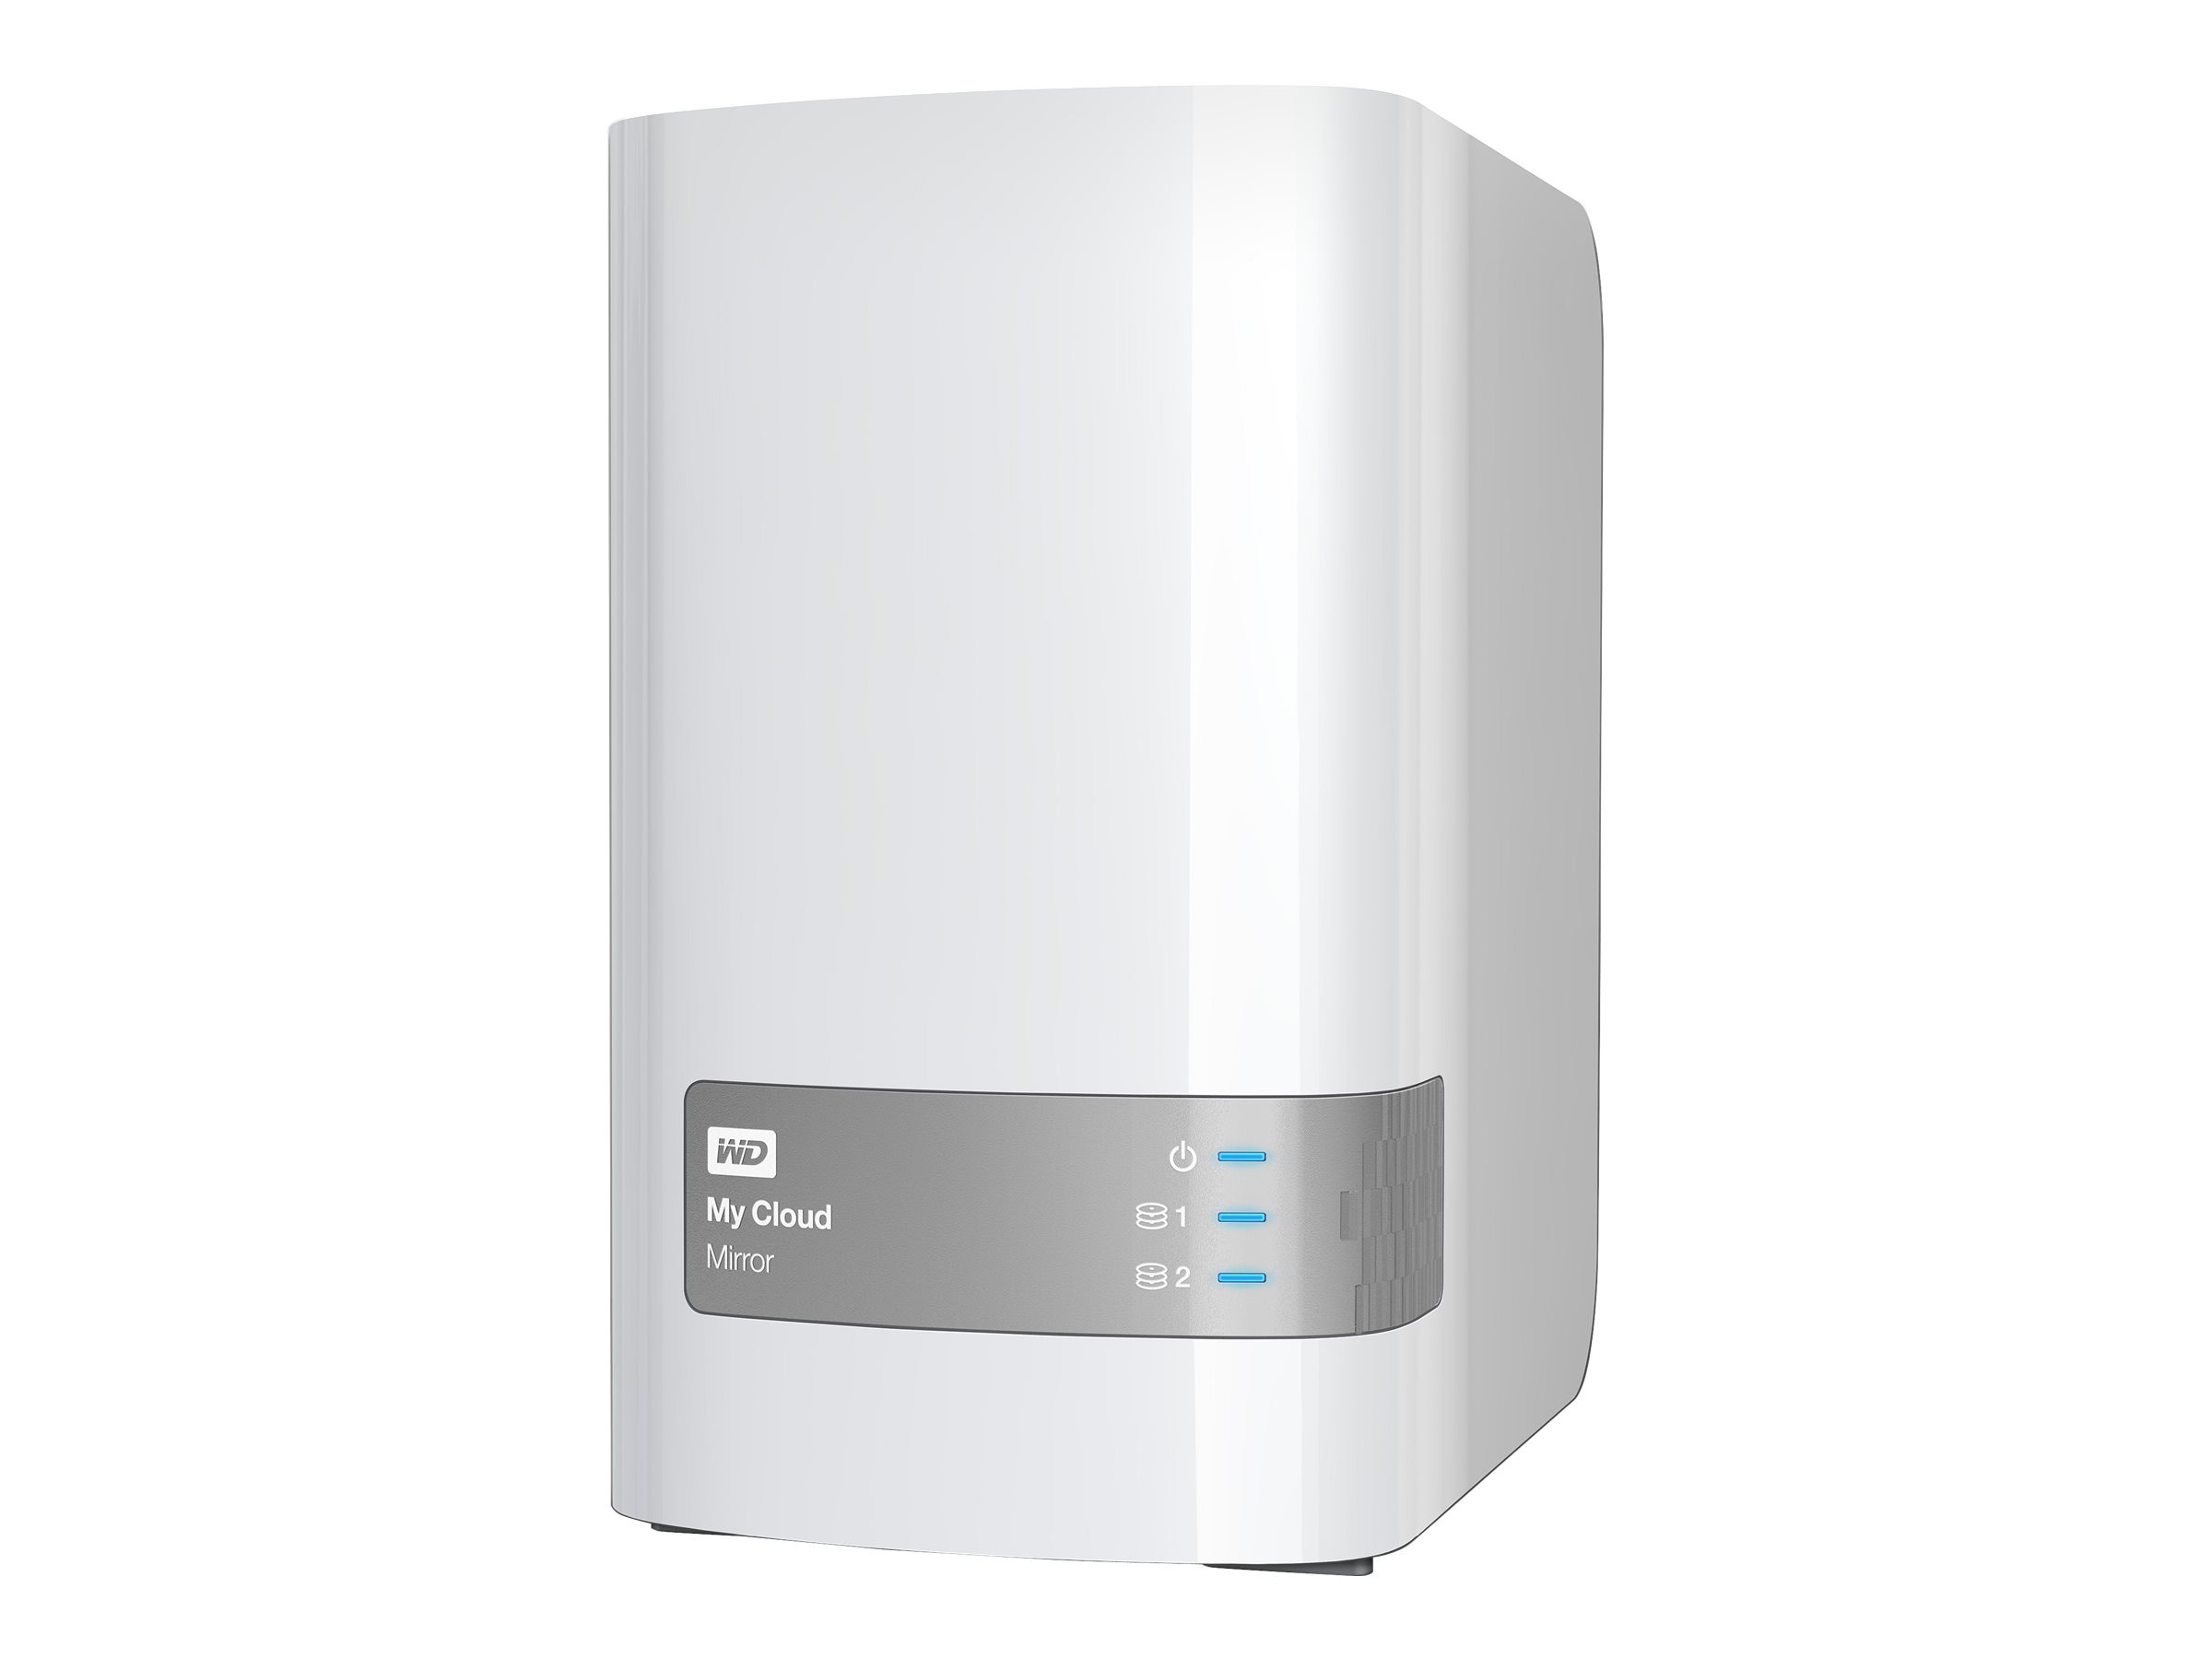 WD 10TB My Cloud Mirror Personal Cloud Storage, WDBZVM0100JWT-NESN, 17841818, Network Attached Storage